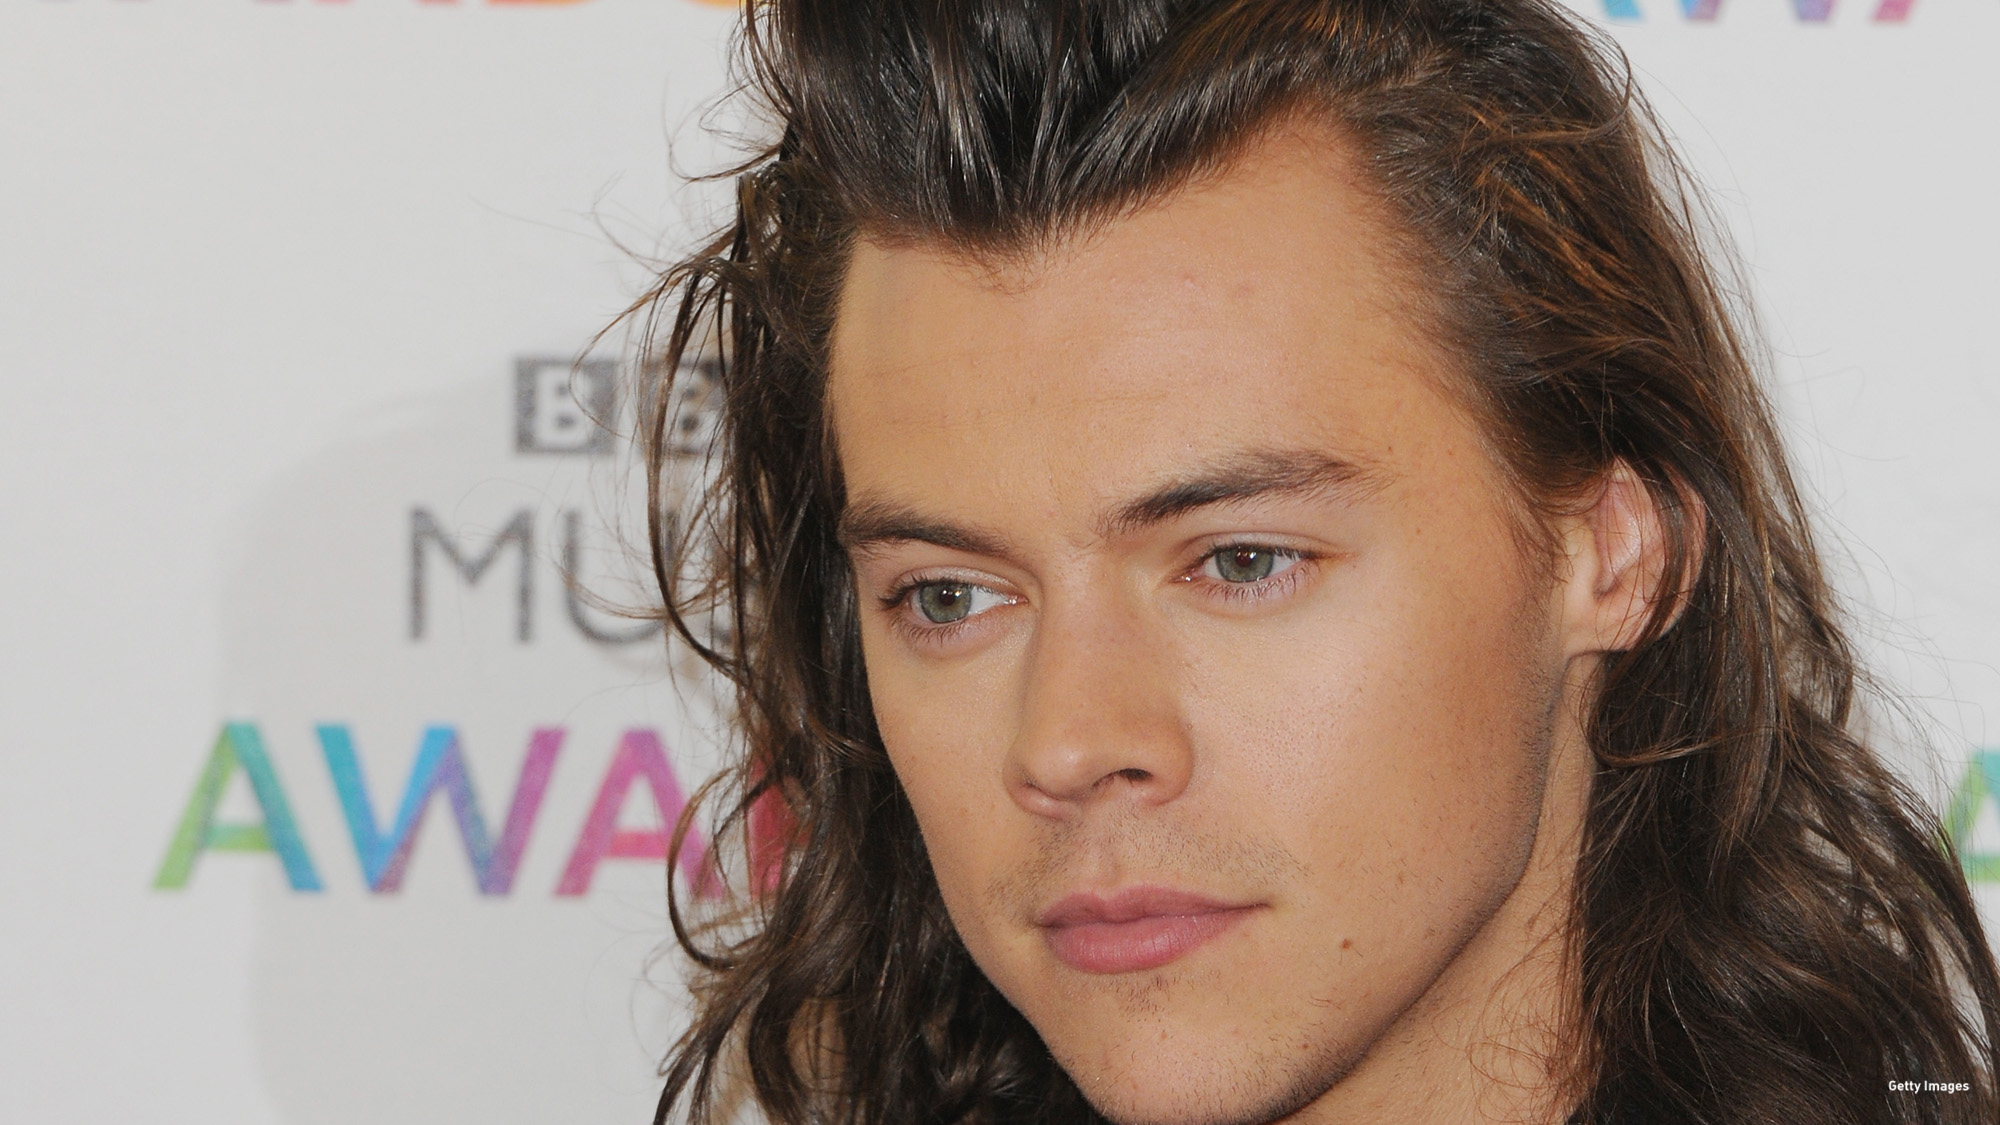 Harry Styles will make his movie debut in 'Dunkirk'. (Pic: Eamonn M. McCormack/Getty Images)